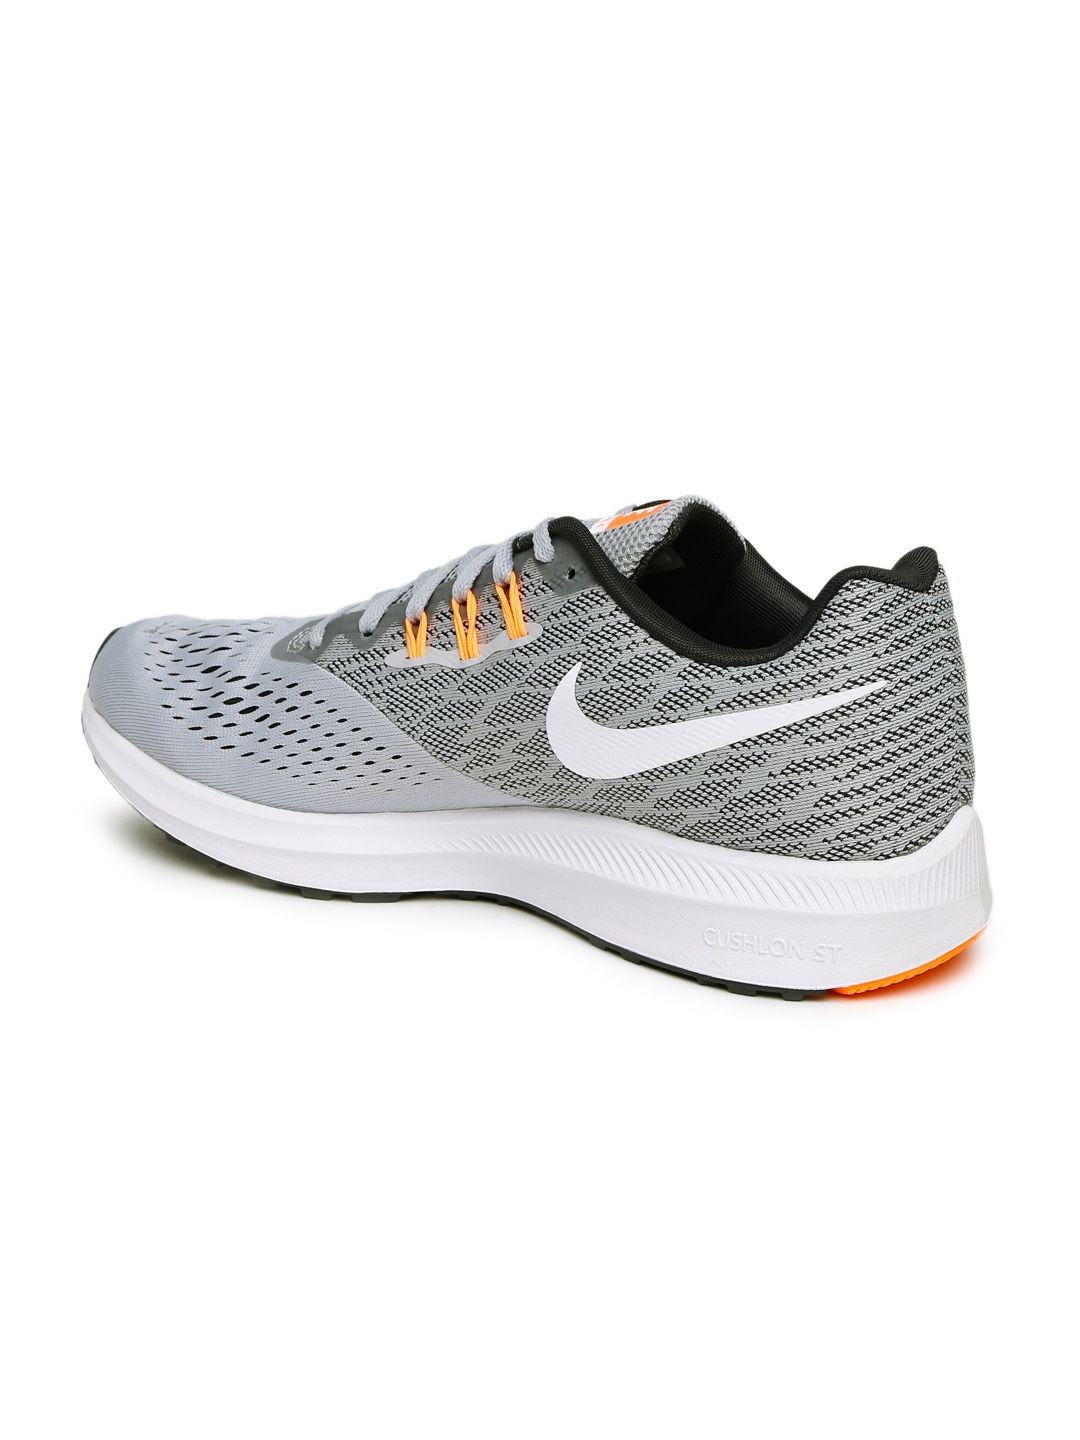 32430b2e11aea Buy Nike Men Grey Zoom Winflo 4 Running Shoes - Sports Shoes for Men ...